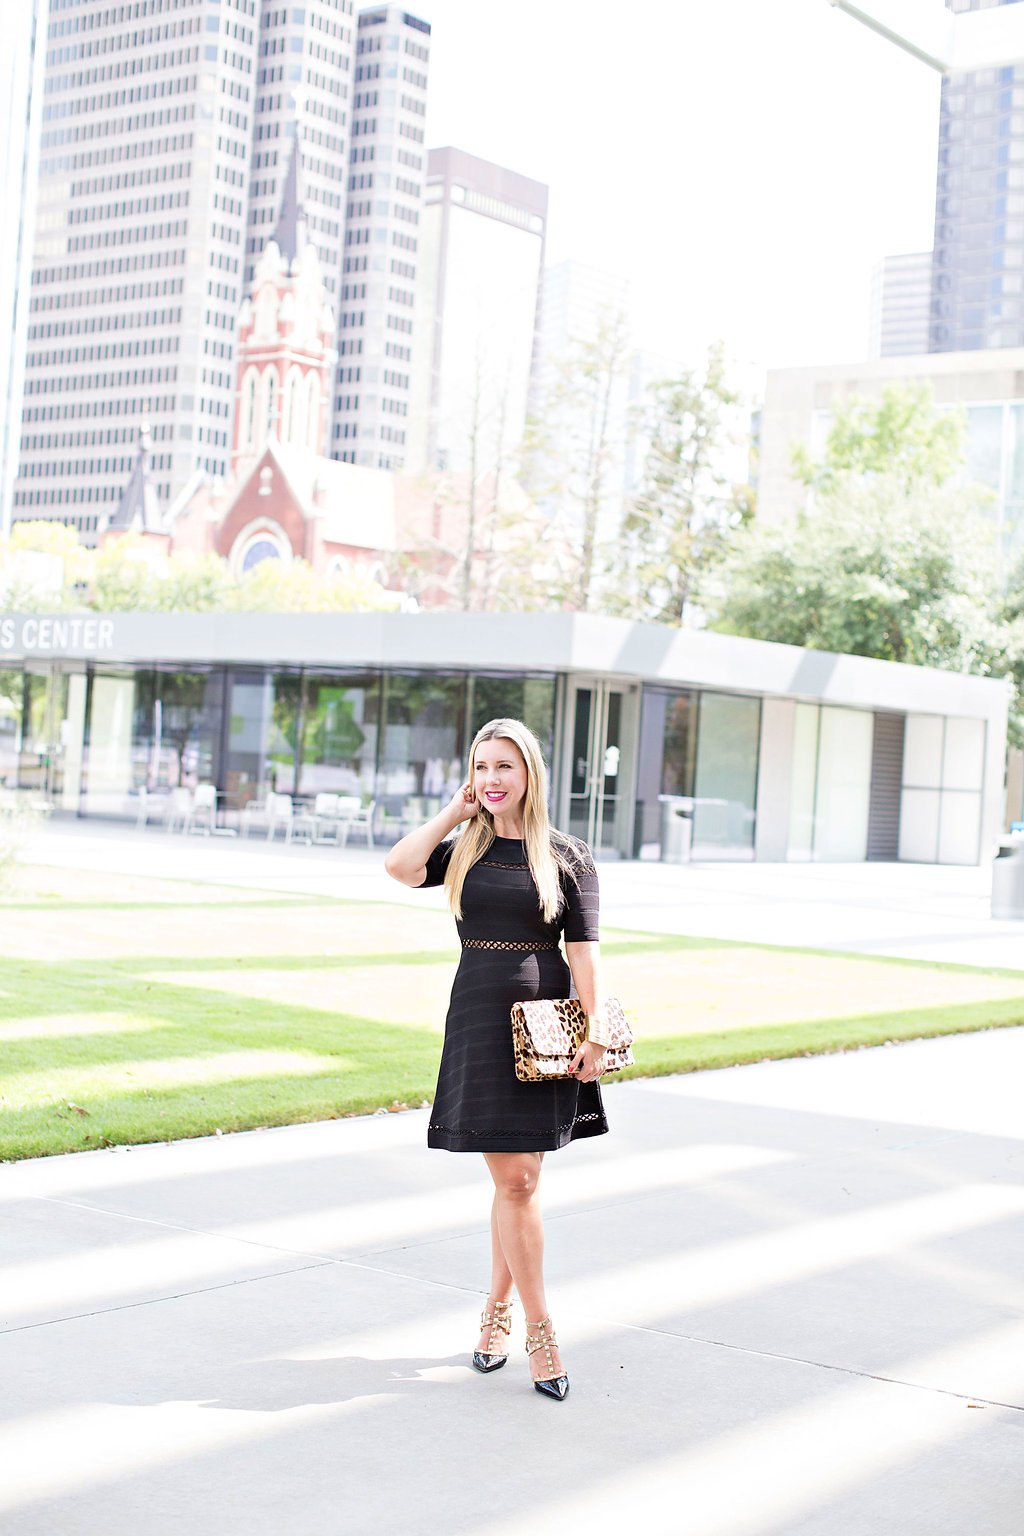 Black Dress - Nordstrom - Dallas Fashion